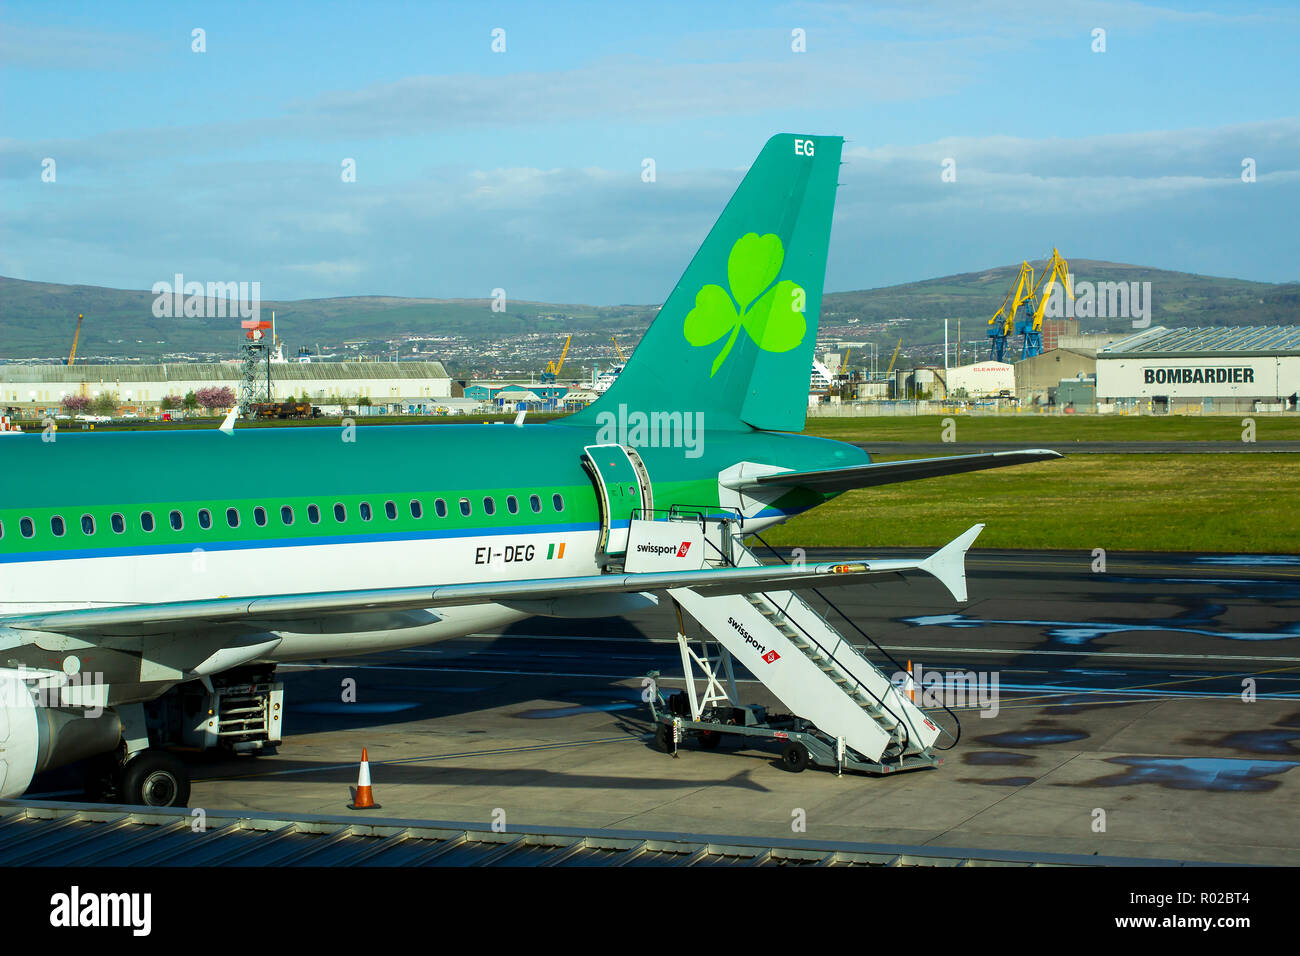 2 May 2018 An Aer Lingus jet with livery sits on the apron at Belfast City Airport in preparation for passenger boarding. - Stock Image